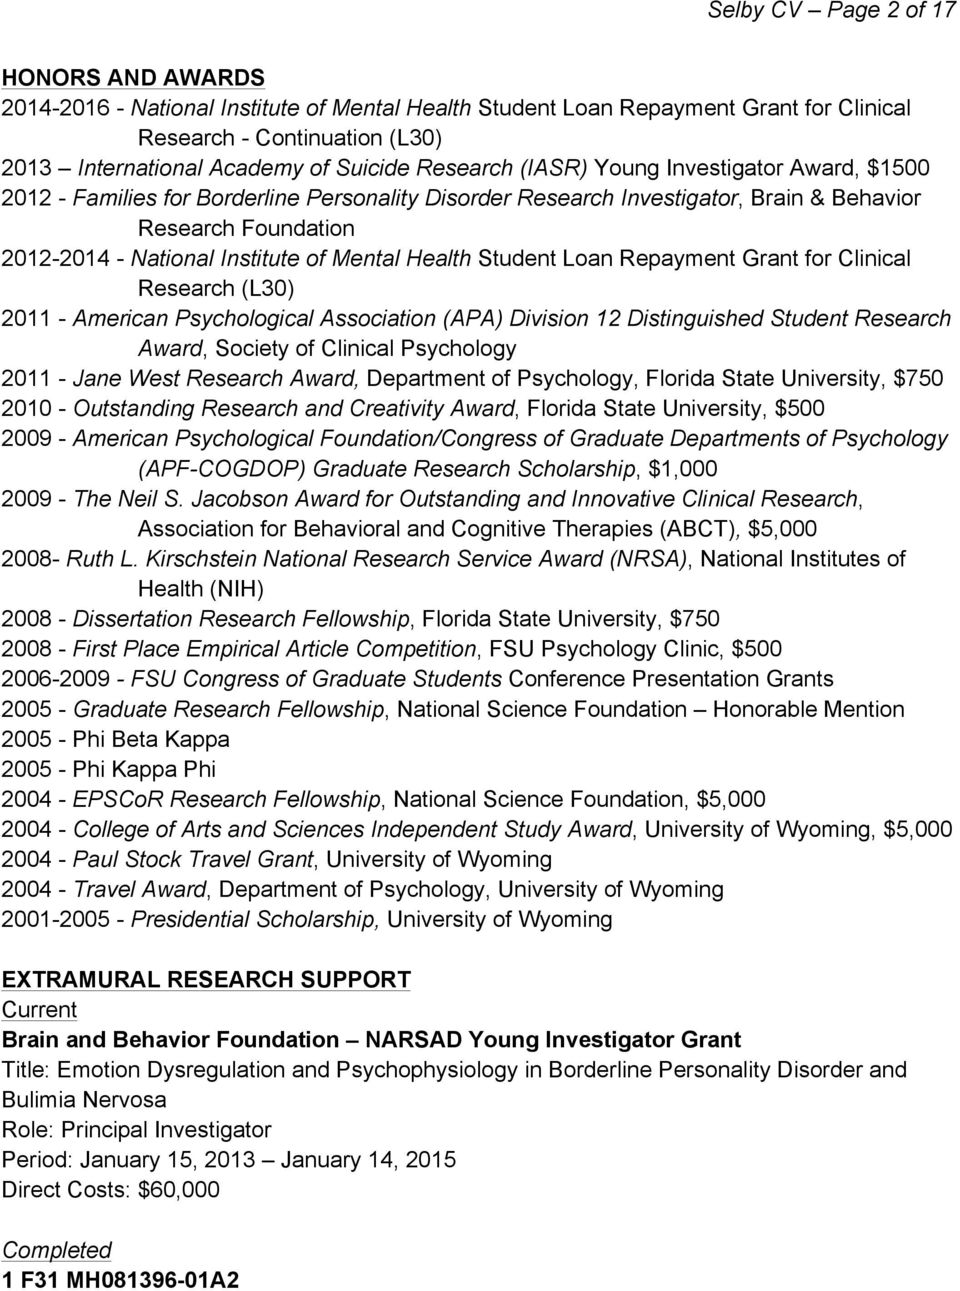 Mental Health Student Loan Repayment Grant for Clinical Research (L30) 2011 - American Psychological Association (APA) Division 12 Distinguished Student Research Award, Society of Clinical Psychology